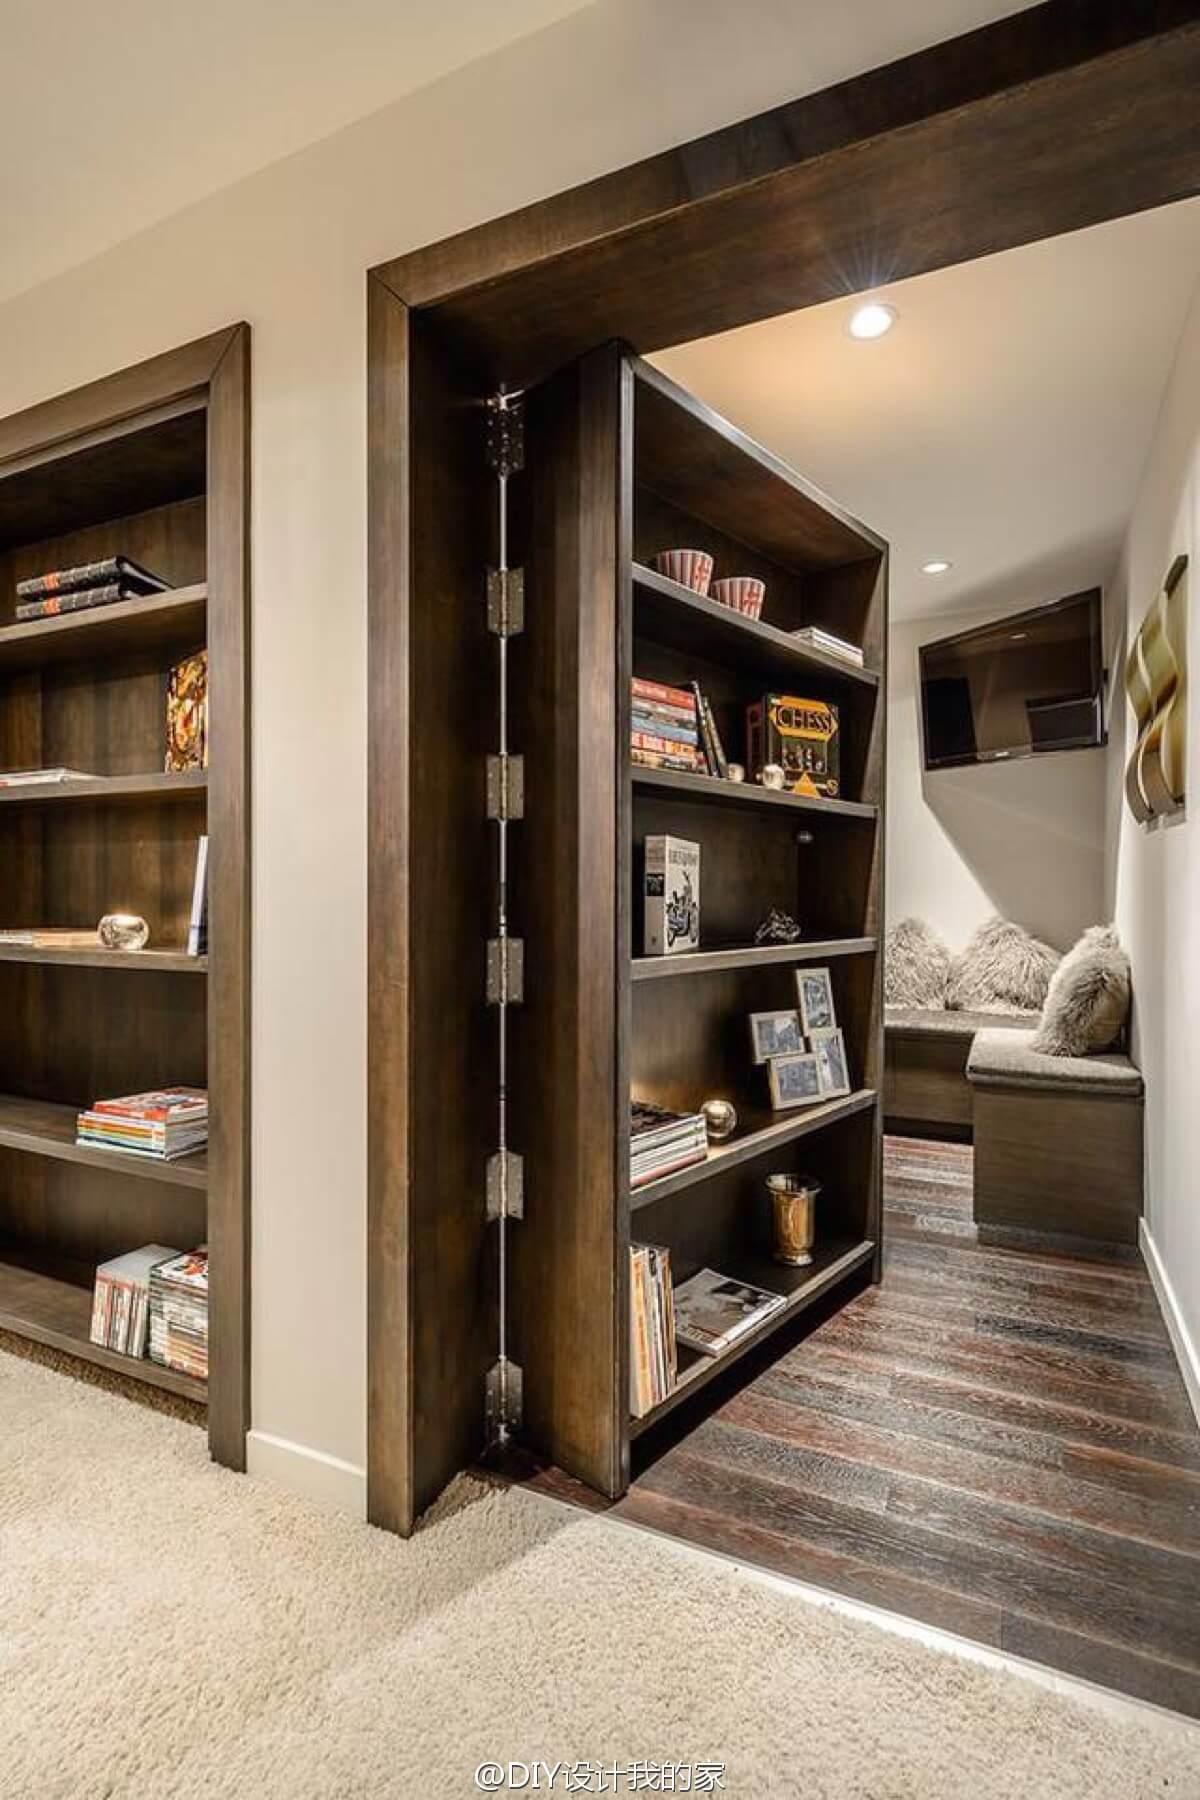 Secret Bookcase Doorway for Hidden Room